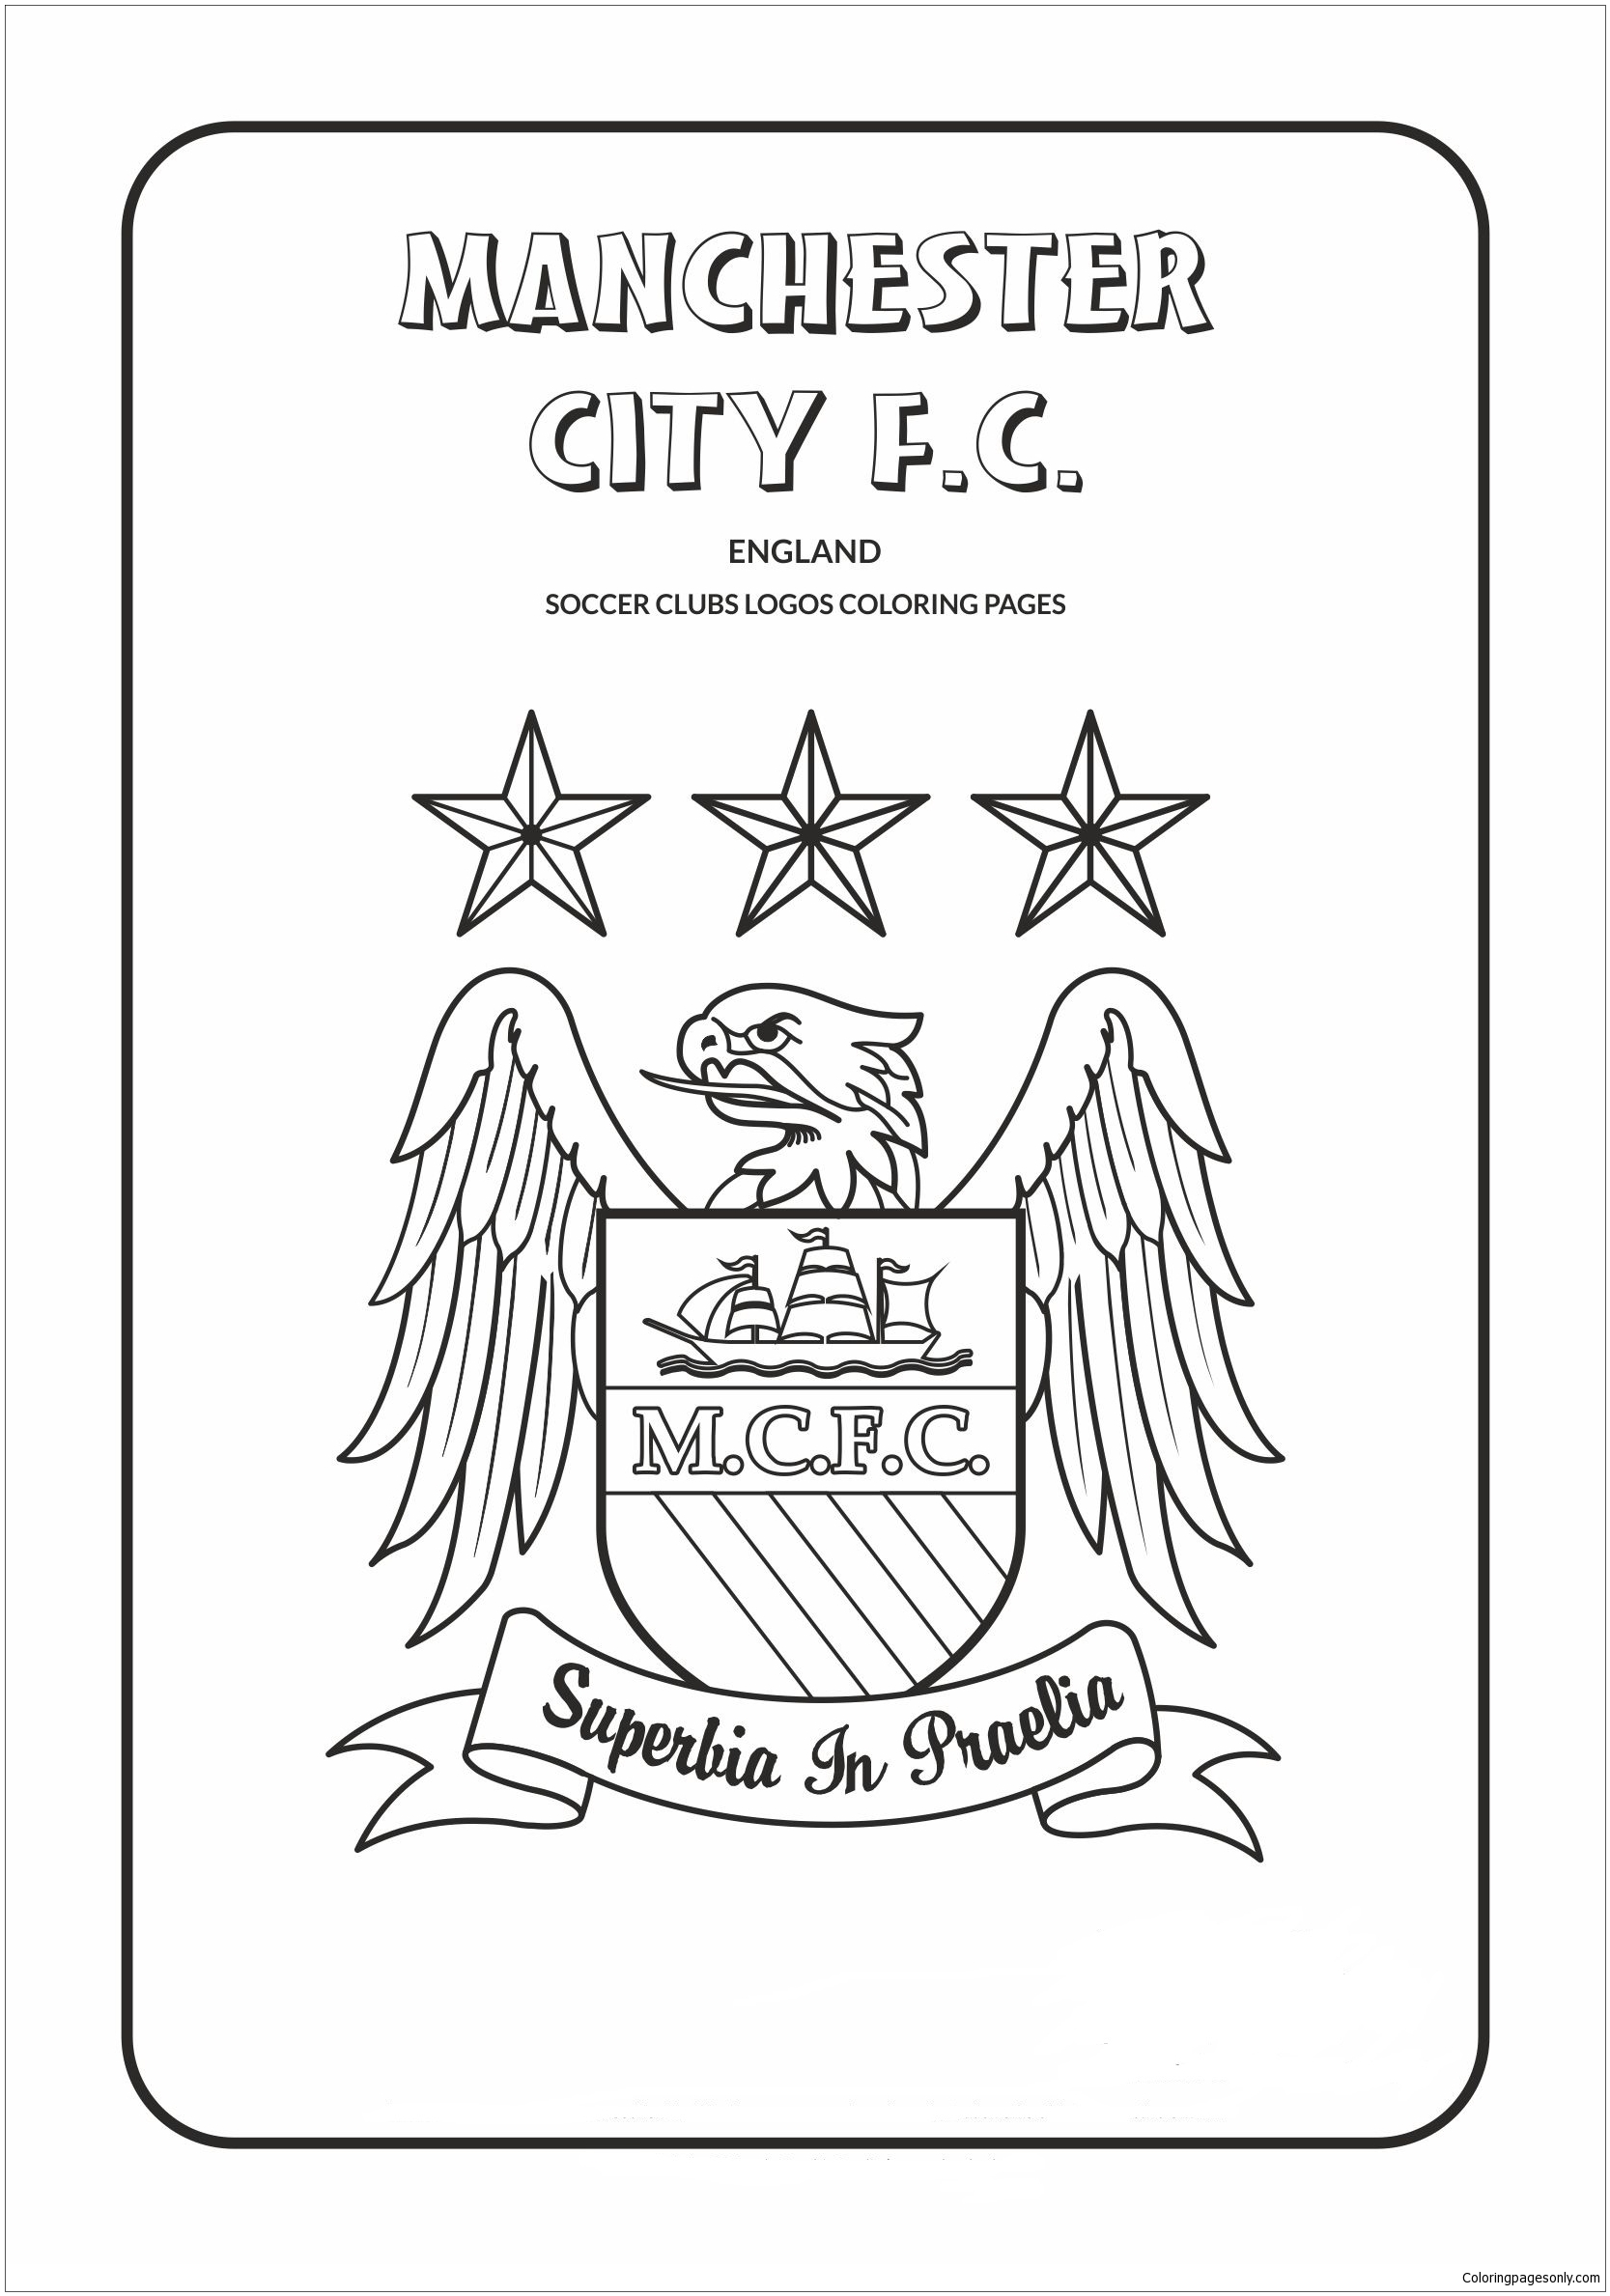 Manchester City F C Coloring Pages Soccer Clubs Logos Coloring Pages Free Printable Coloring Pages Online